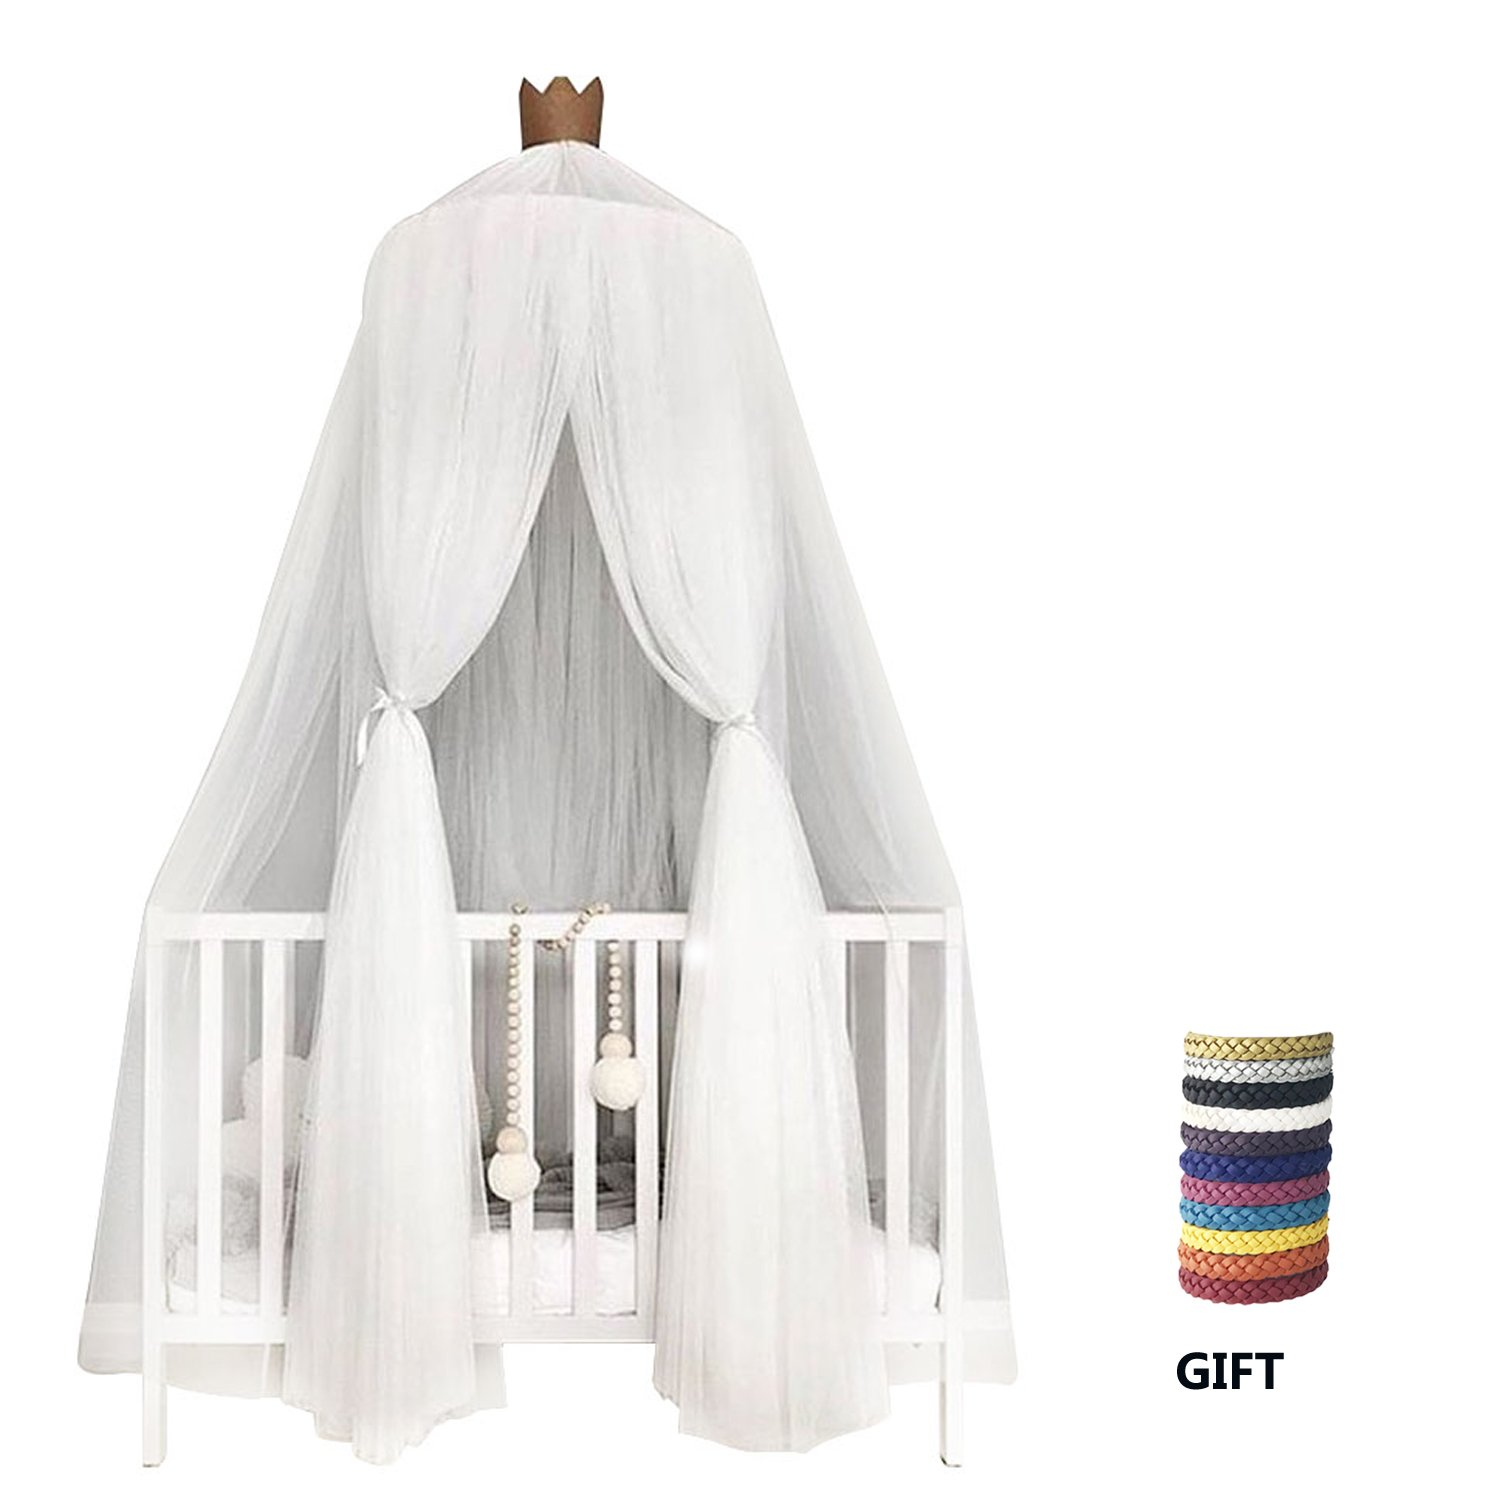 Xinyi Children Bed Mosquito Net for Kids, Crib Bed Canopy Round Dome Hanging Netting Tent Bedding for Boys and Girls Playing Reading Indoor Lace Decoration White